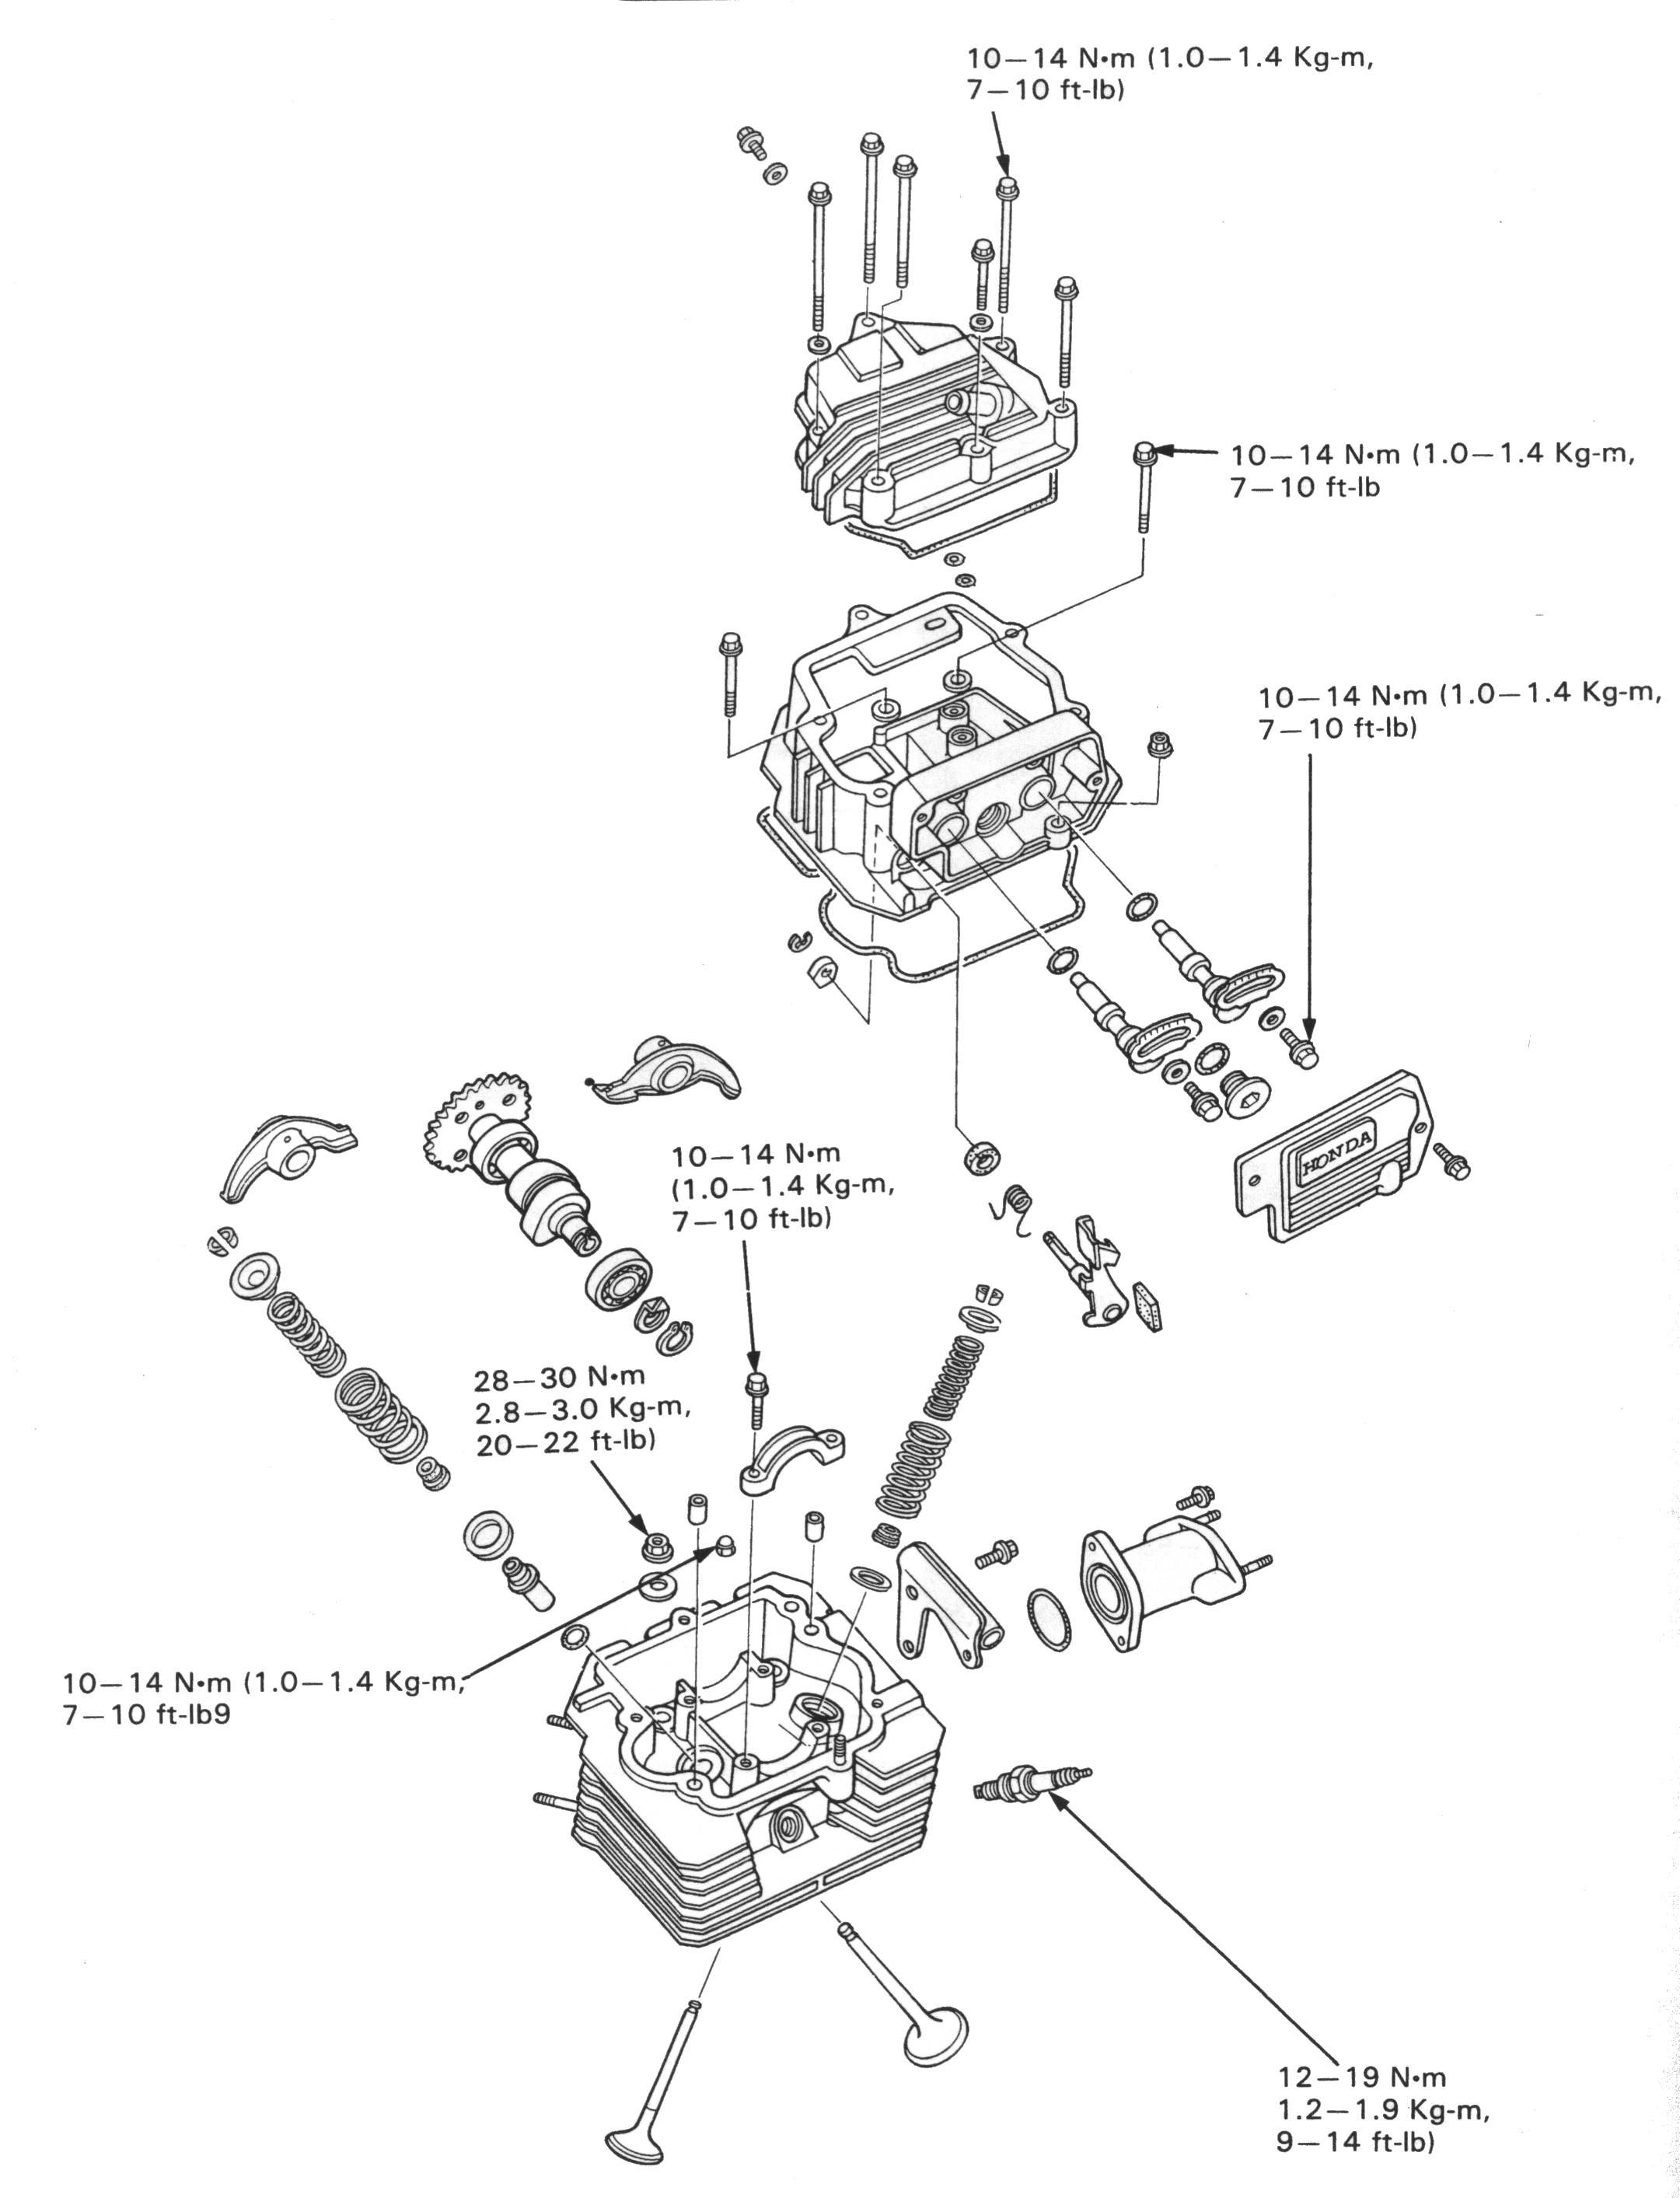 2004 Honda Shadow 750 Valve Adjustment Method